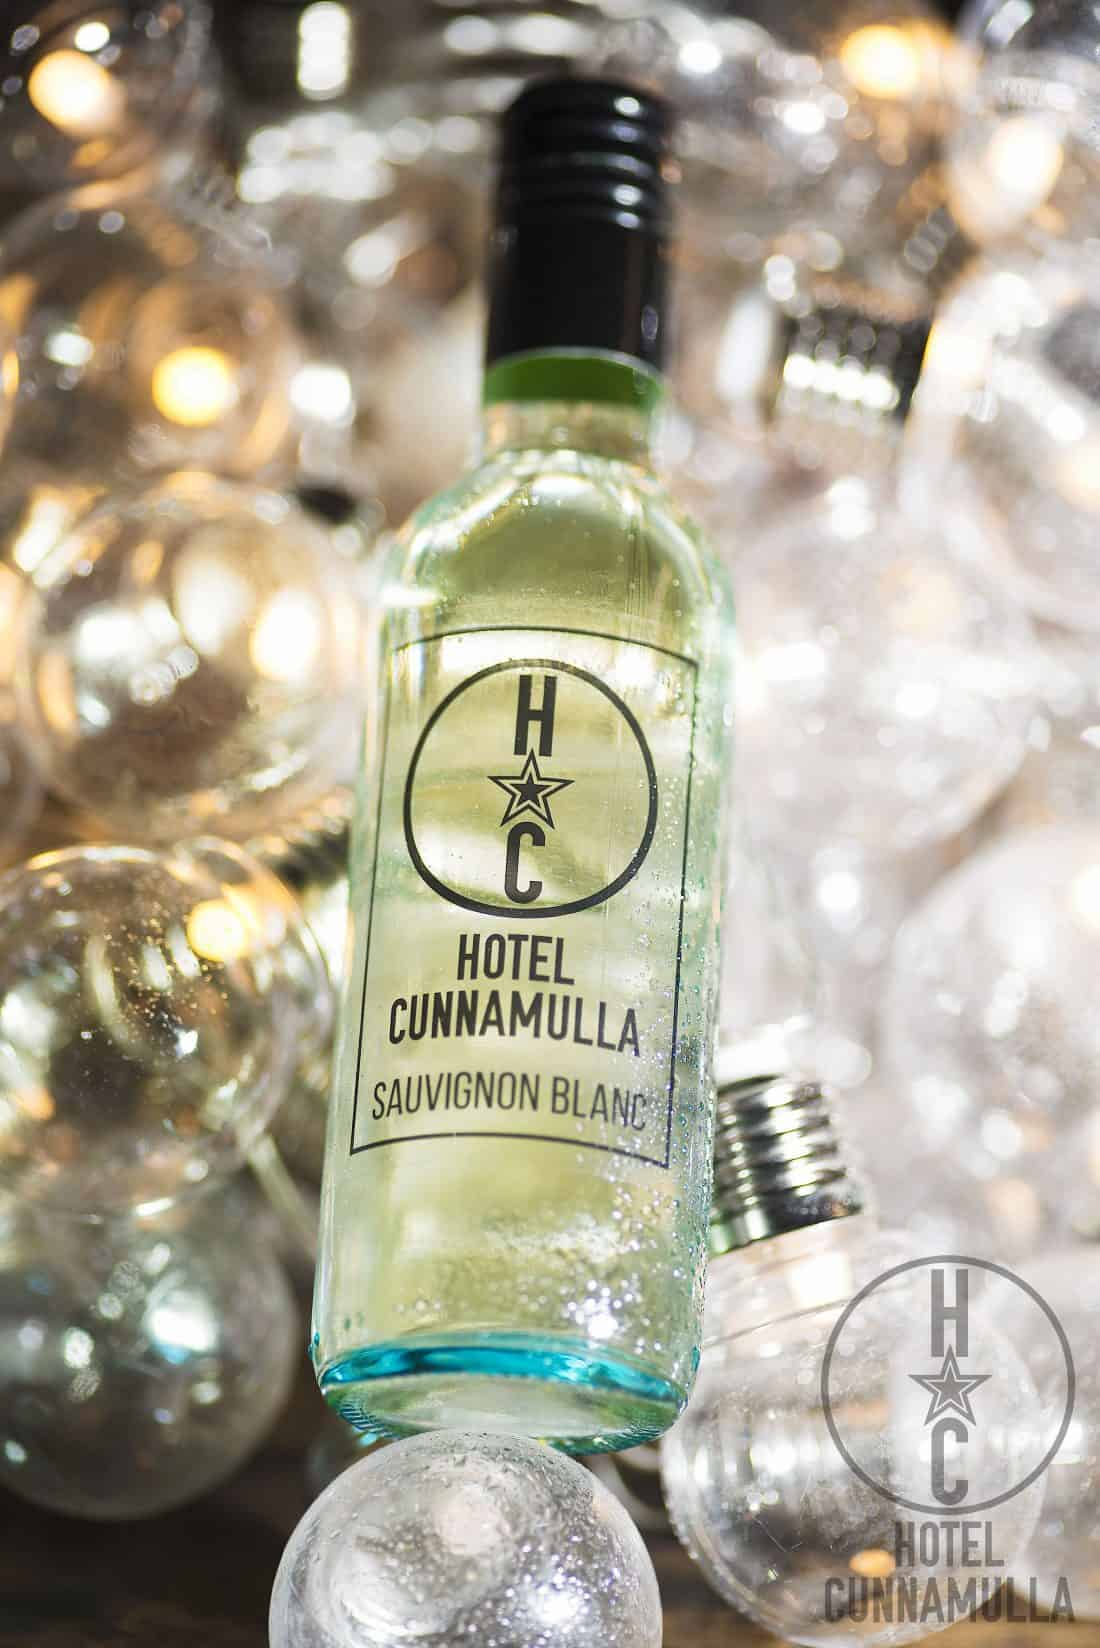 Hotel Cunnamulla's very own wine, a Sauvignon Blanc, ice cold and crisp flavoured, perfect company with any of our meals in the restaurant or licensed cafe.